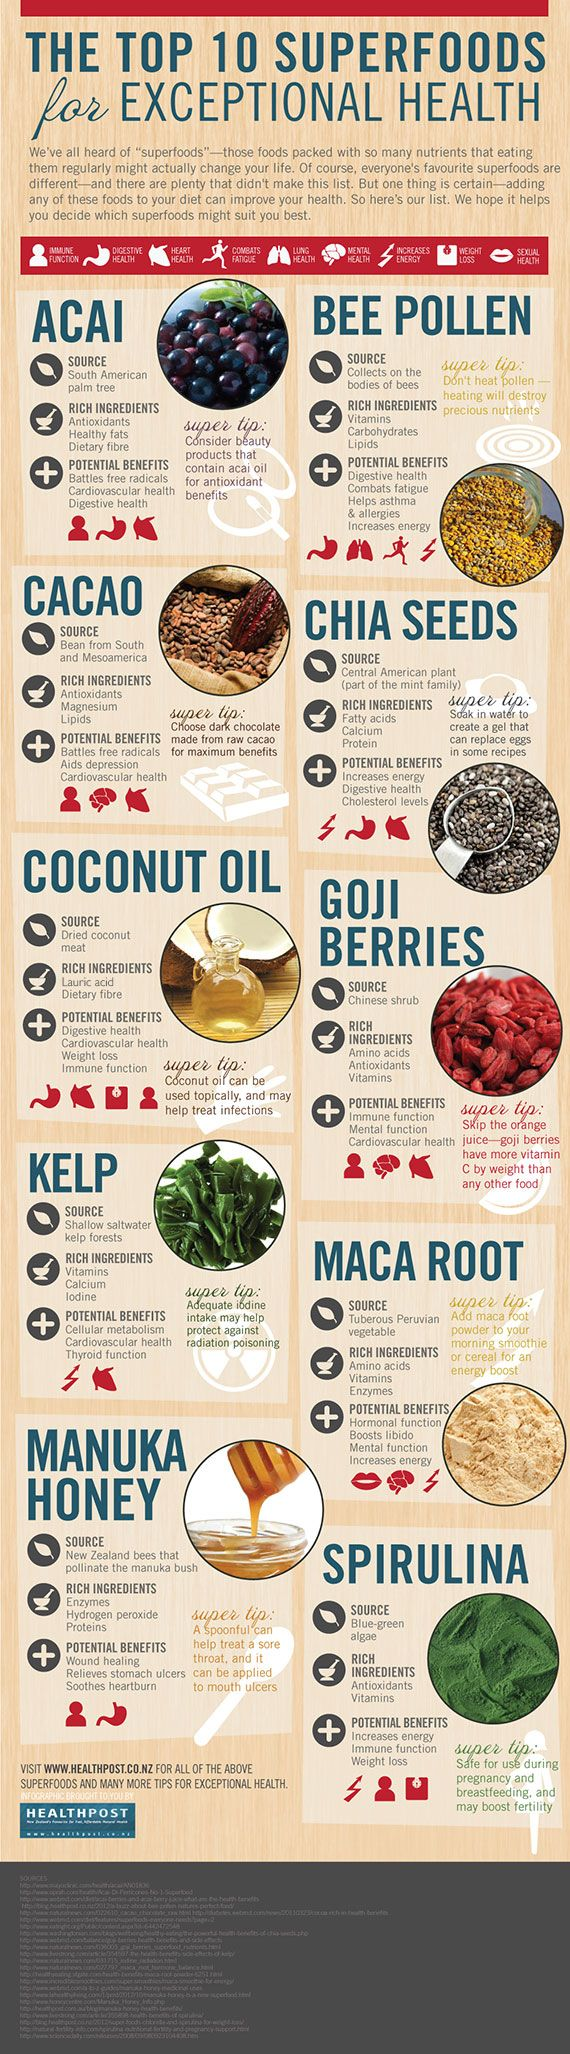 Here Are The Top 10 Super foods for Exceptional #Health http://www.zhounutrition.com/